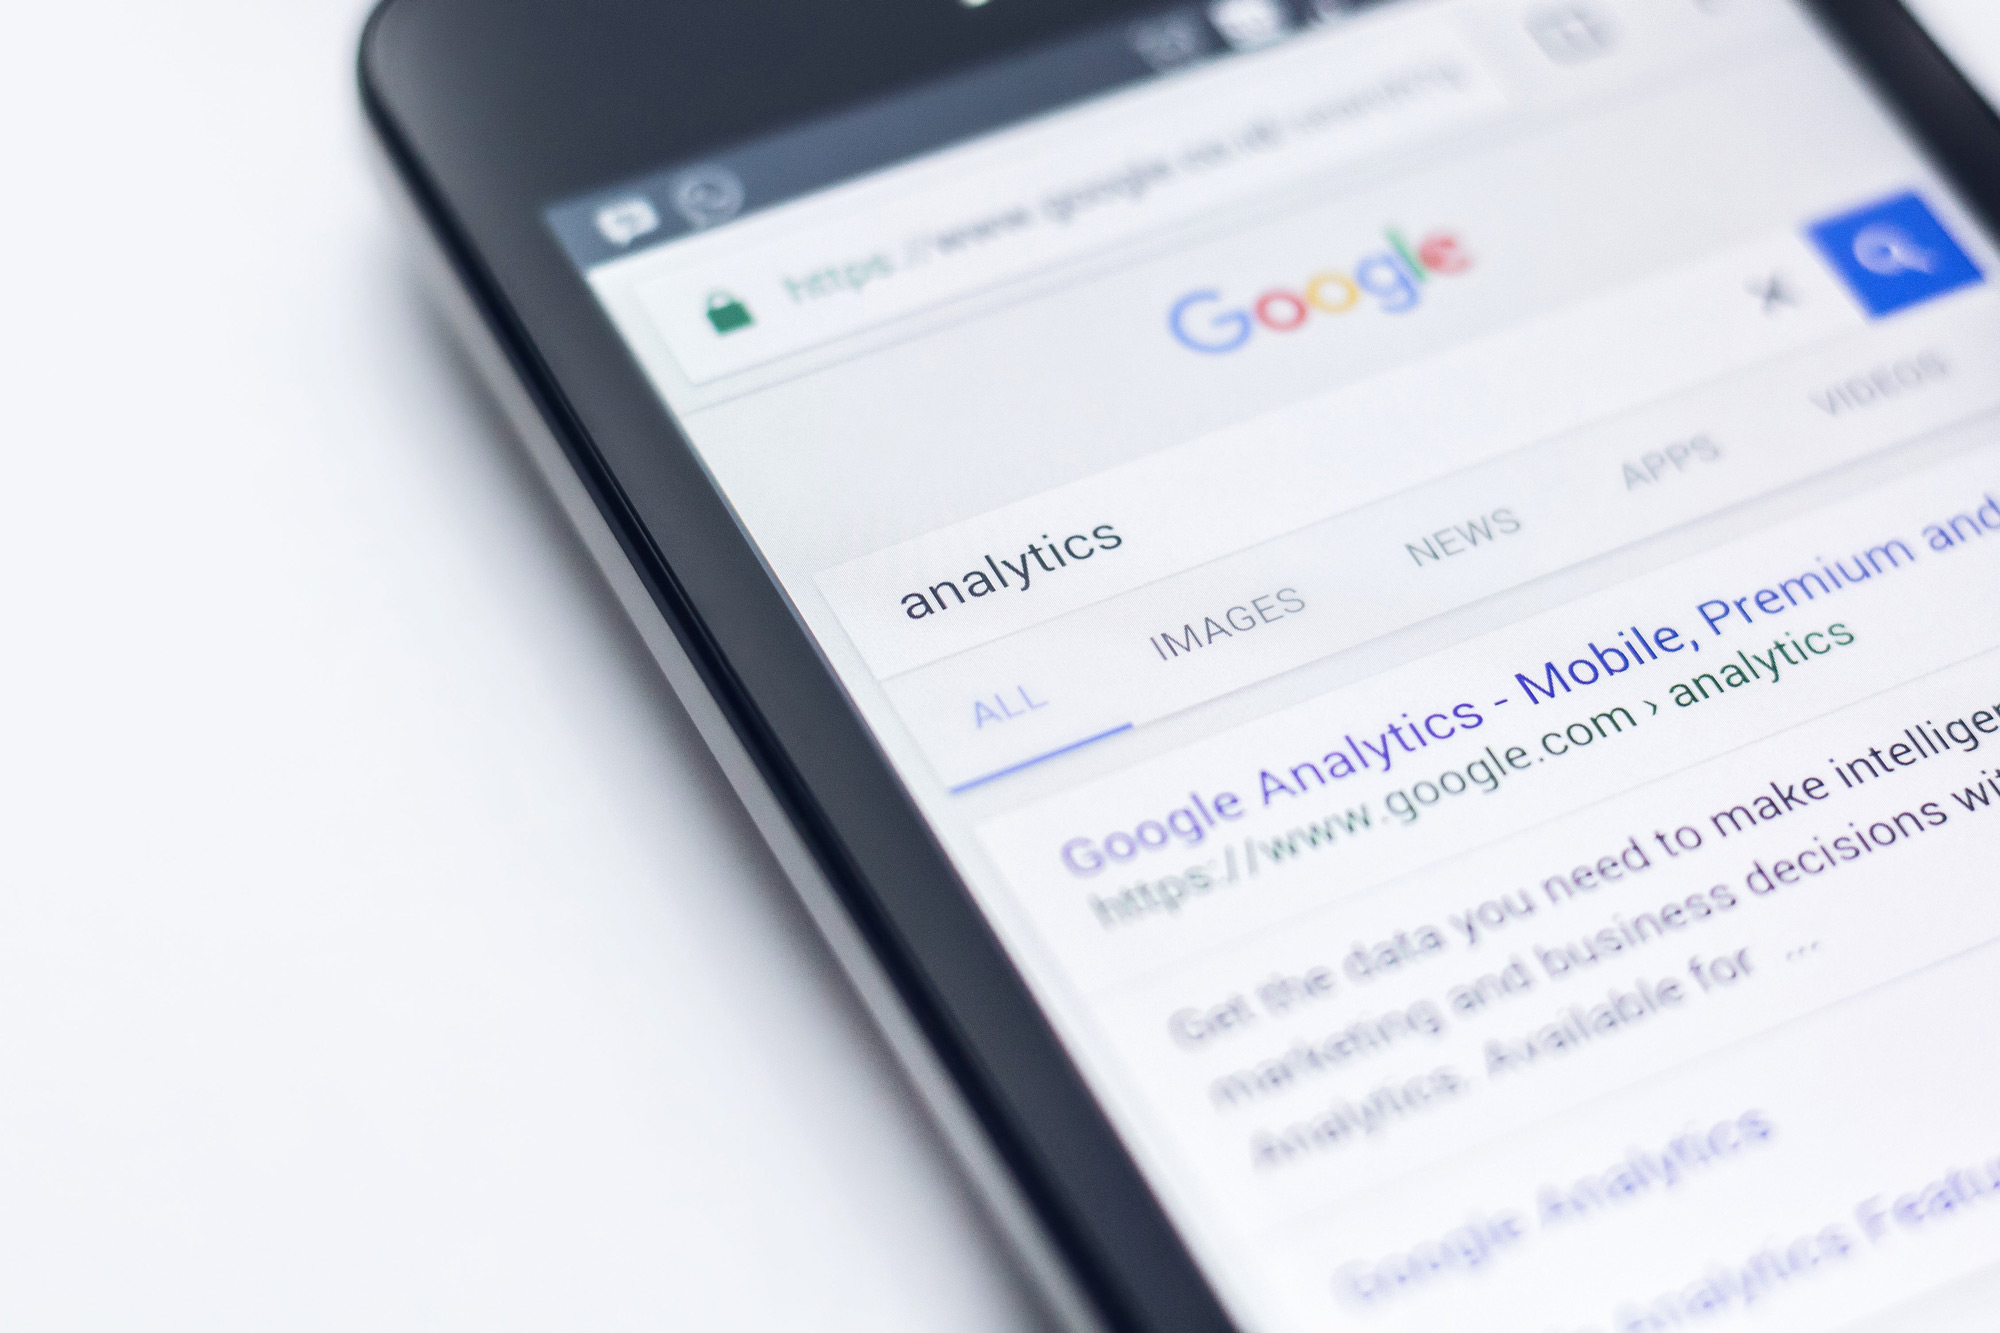 Mobile search of google analytics showing the results when searched.